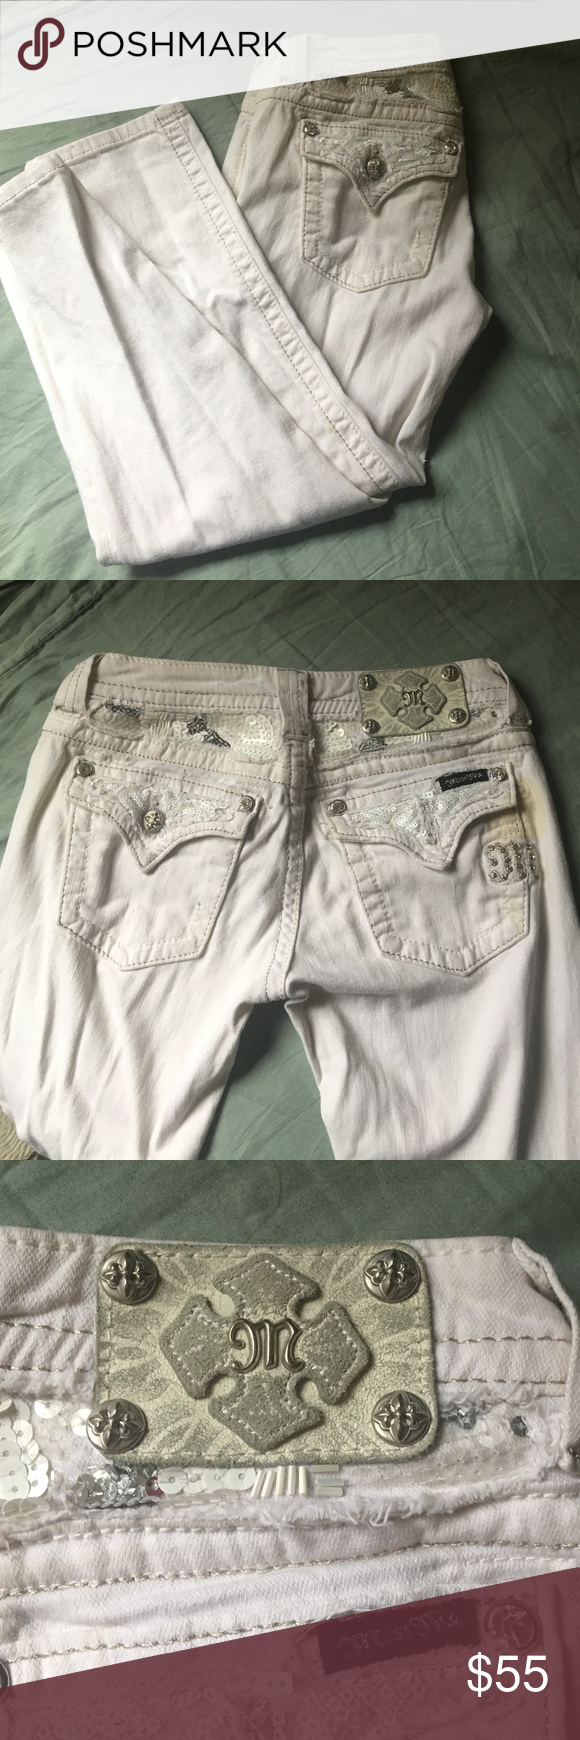 White Miss Me capris size 25 😍 Adorable Miss Me capris size 25. So cute! Too small for me, now. But I loved these! Small stain on the pocket but easily fixable with bleach. Missing the button, but those are available free of charge at any buckle location (: Miss Me Jeans Ankle & Cropped